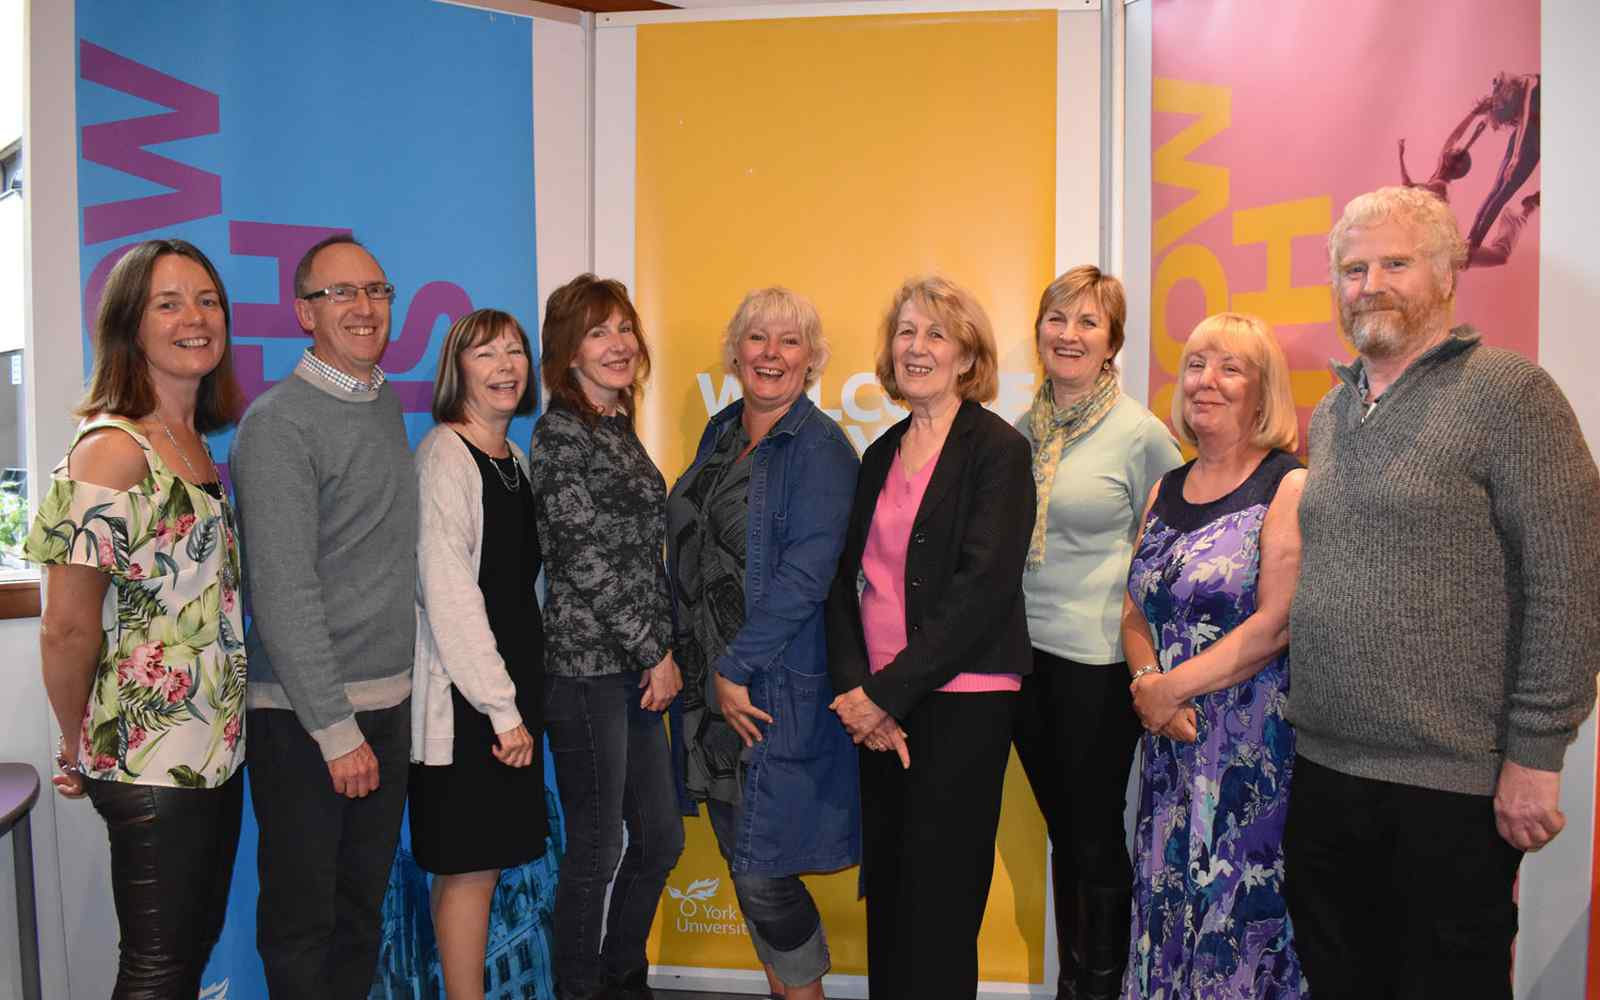 9 people standing in front of coloured background